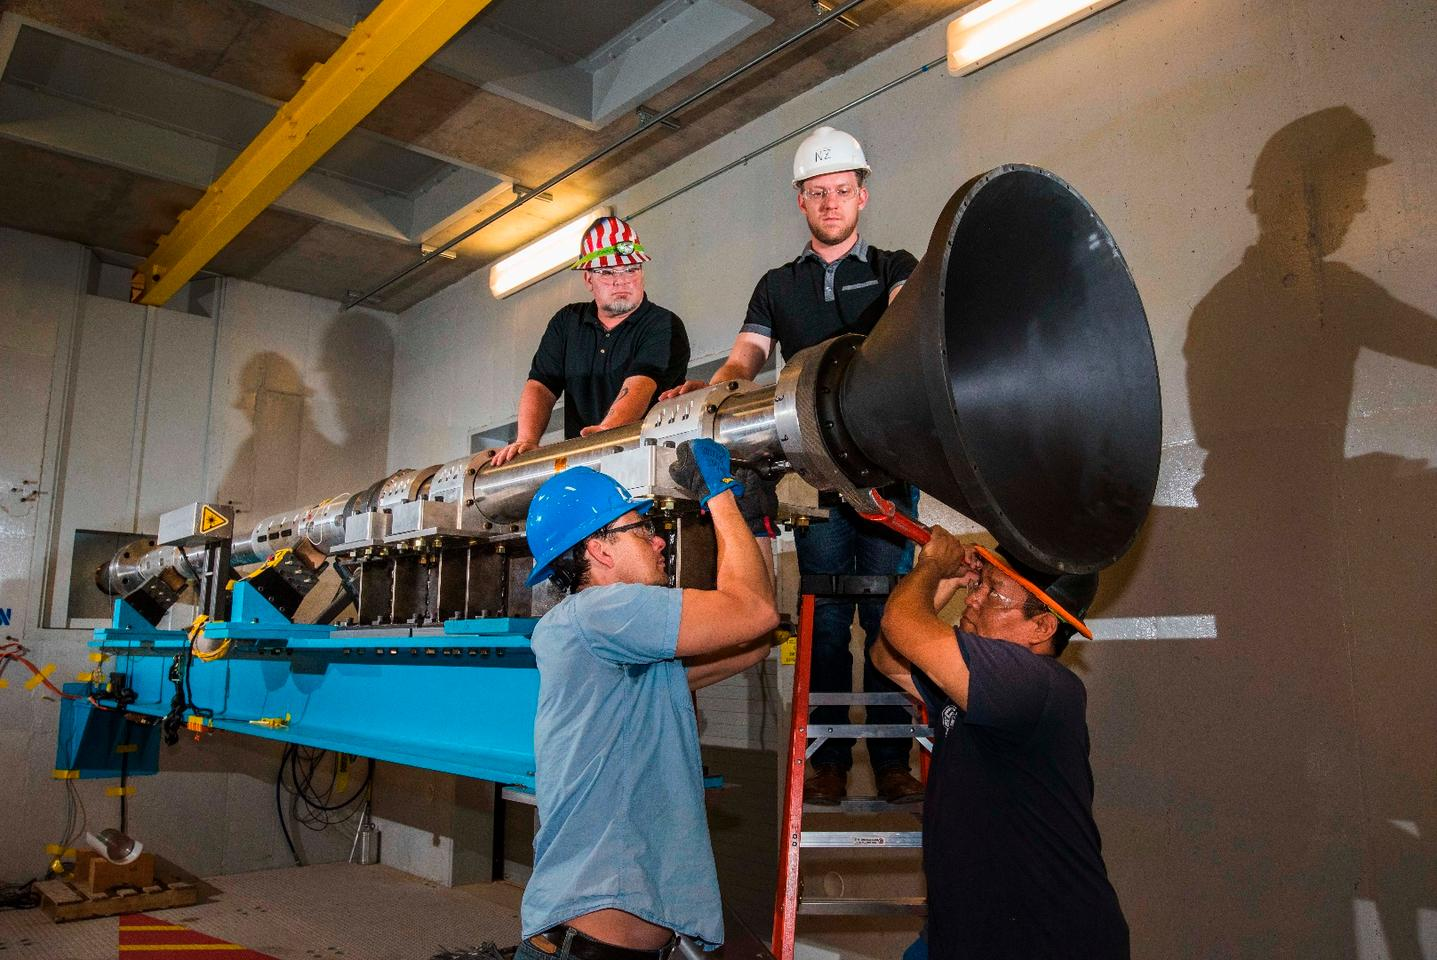 Sandia engineers attach a resonant cone to a modified Hopkinson bar known as a resonant beam, in preparation for an alternative pyroshock test